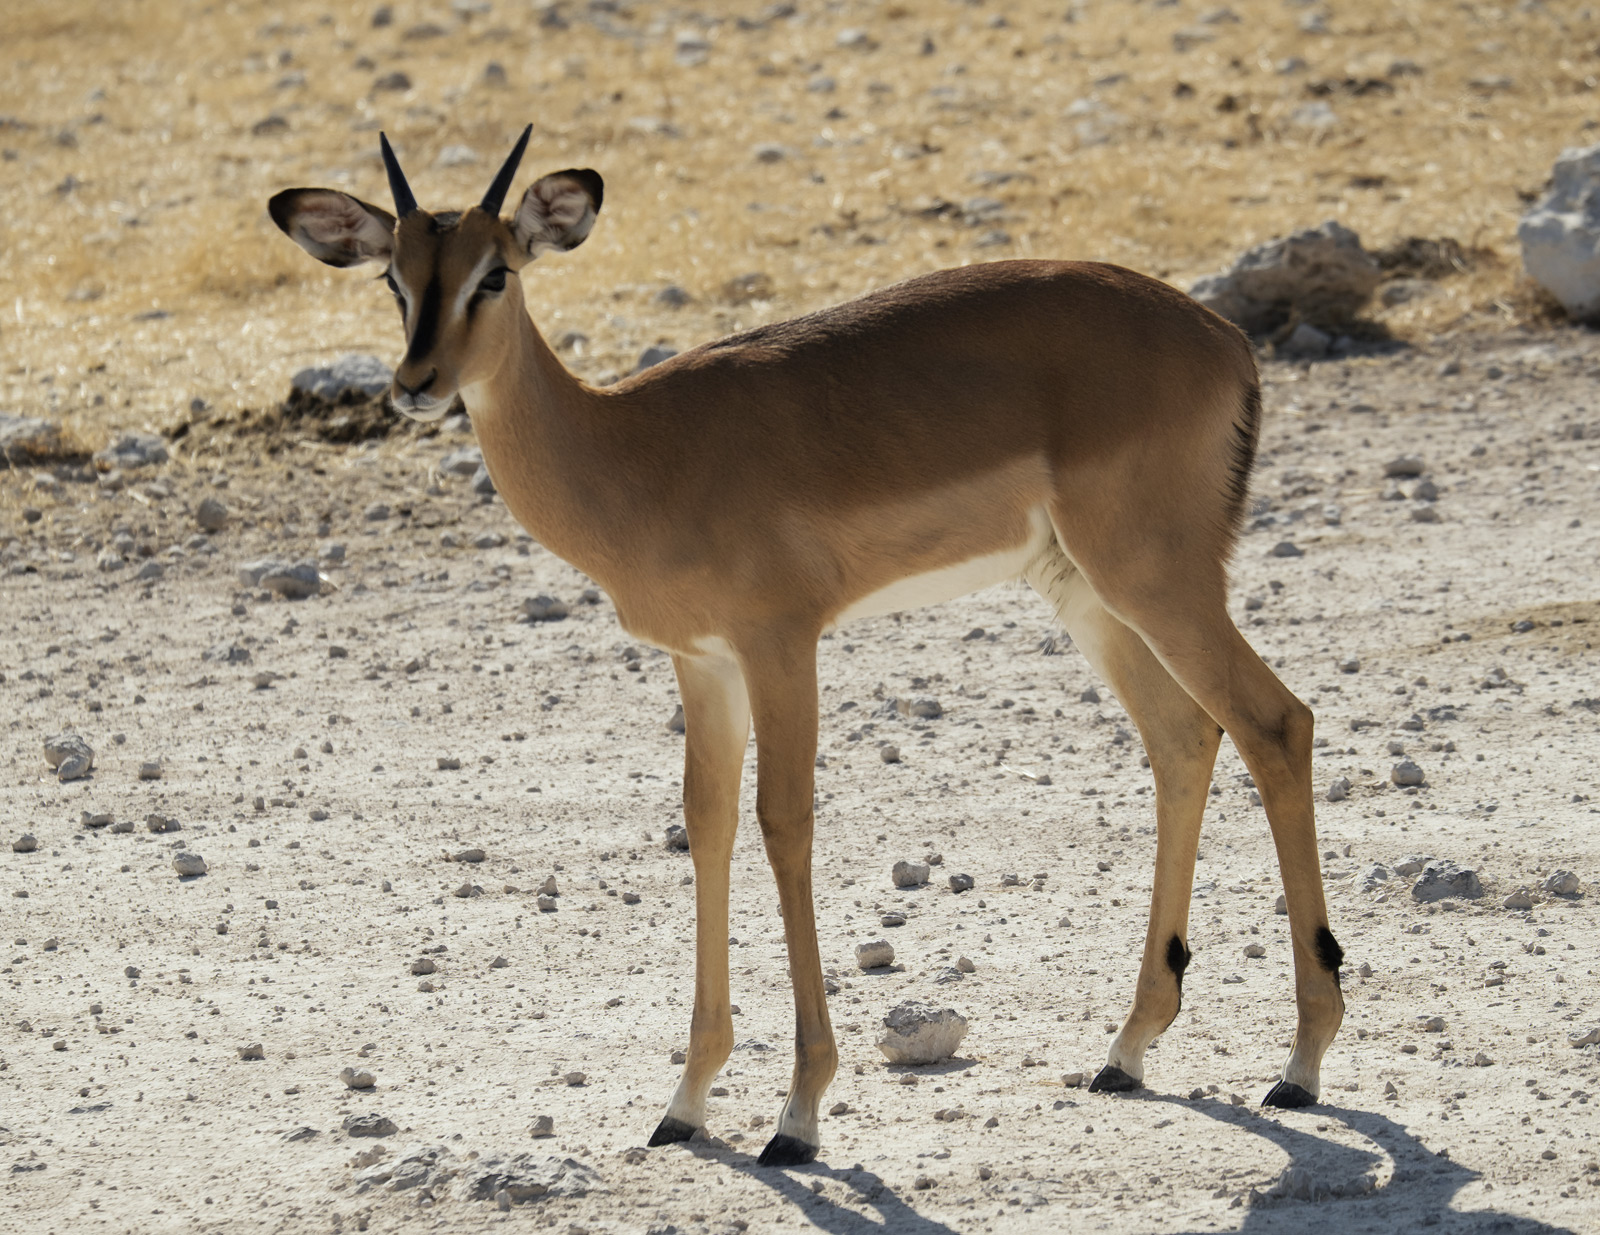 This beautifully elegant young female impala was totally immaculate, unlike the battle scarred bucks that would doubtless be...